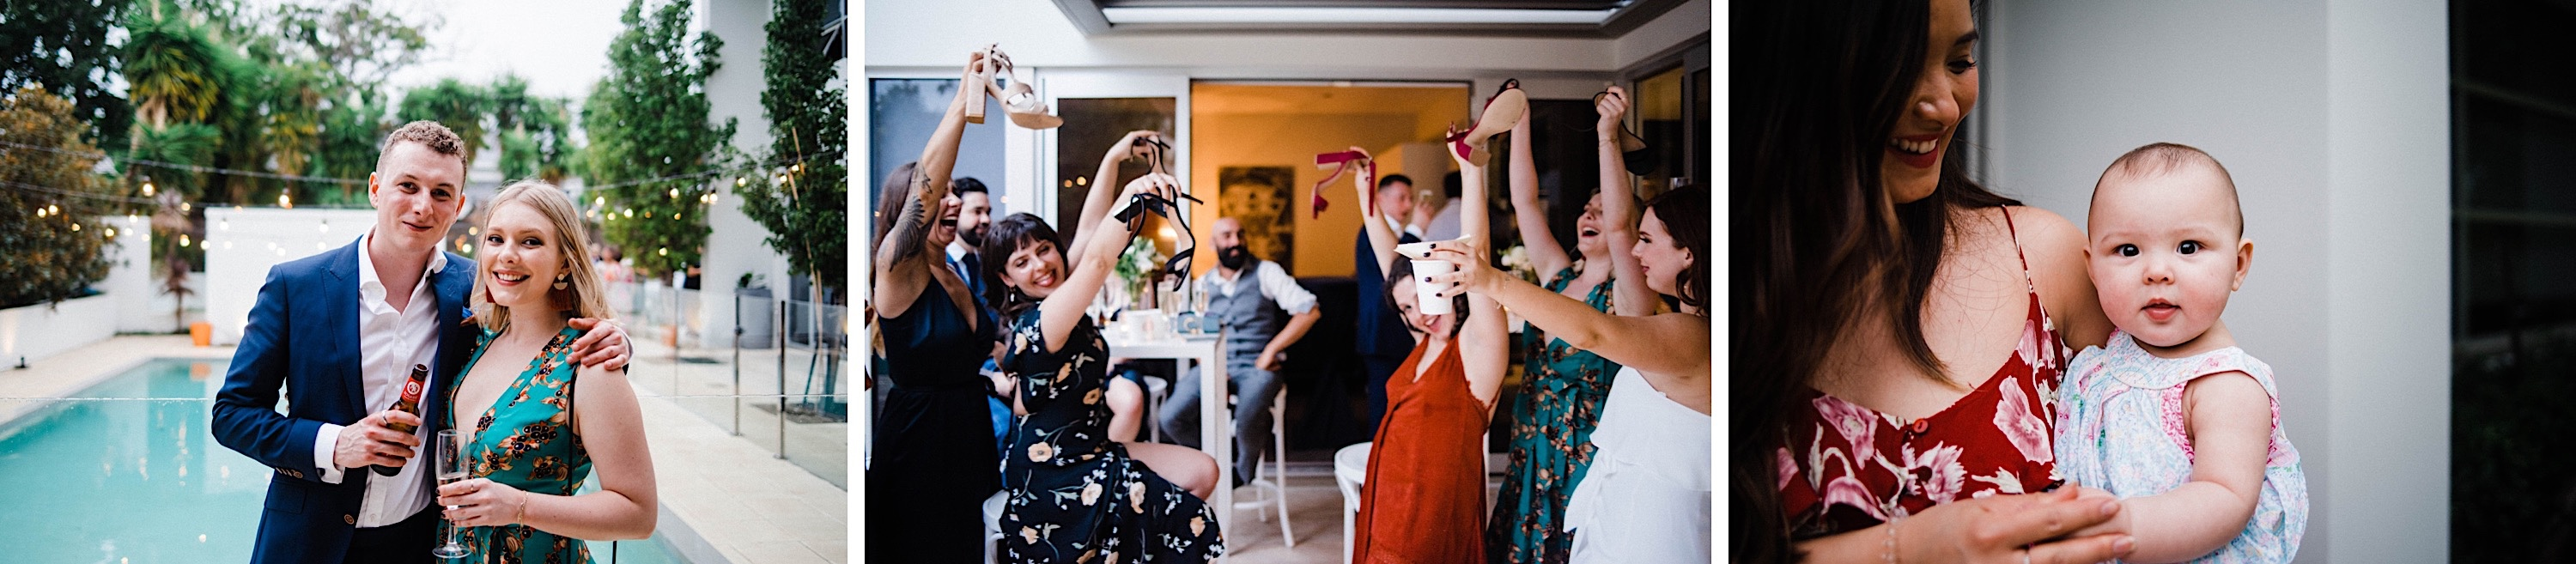 Three documentary wedding photos of guests at a Sustainable Backyard Wedding in Nedlands. On the left, a couple smile at the camera, in the middle women wave their heels in the air and on the right a Mum holds her baby.